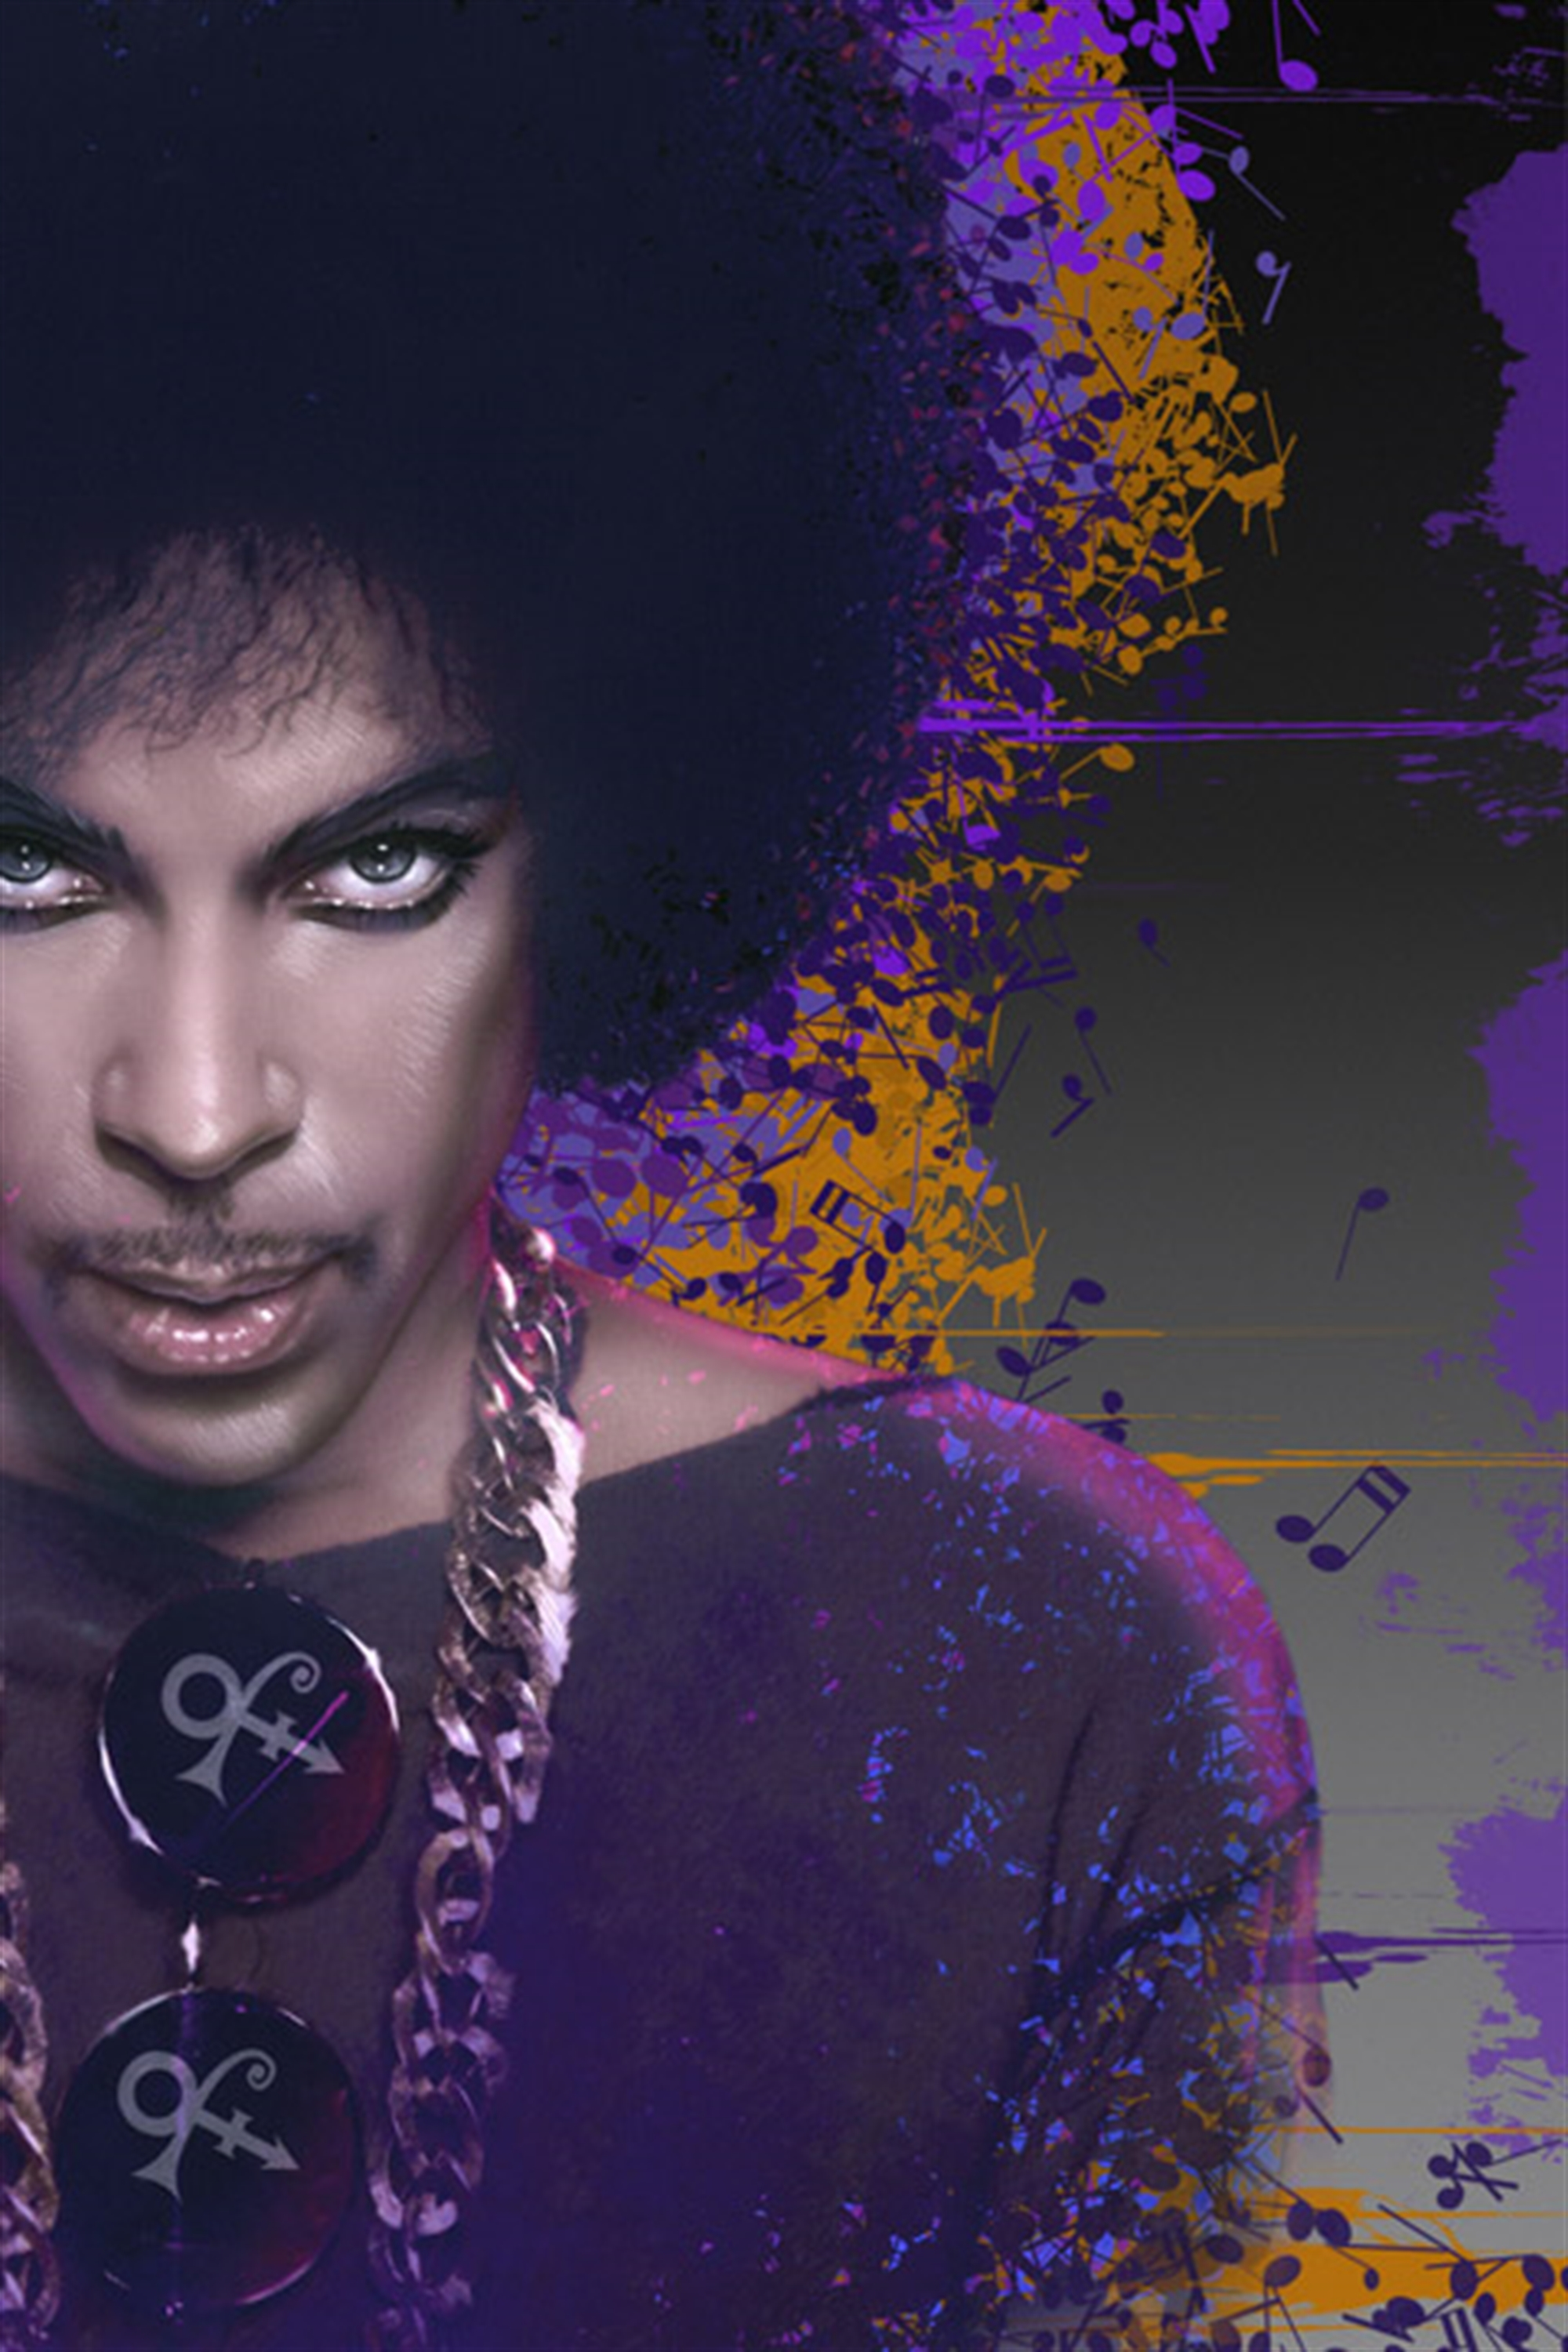 Let the Music Play Series: Prince by Adam Scott Rote